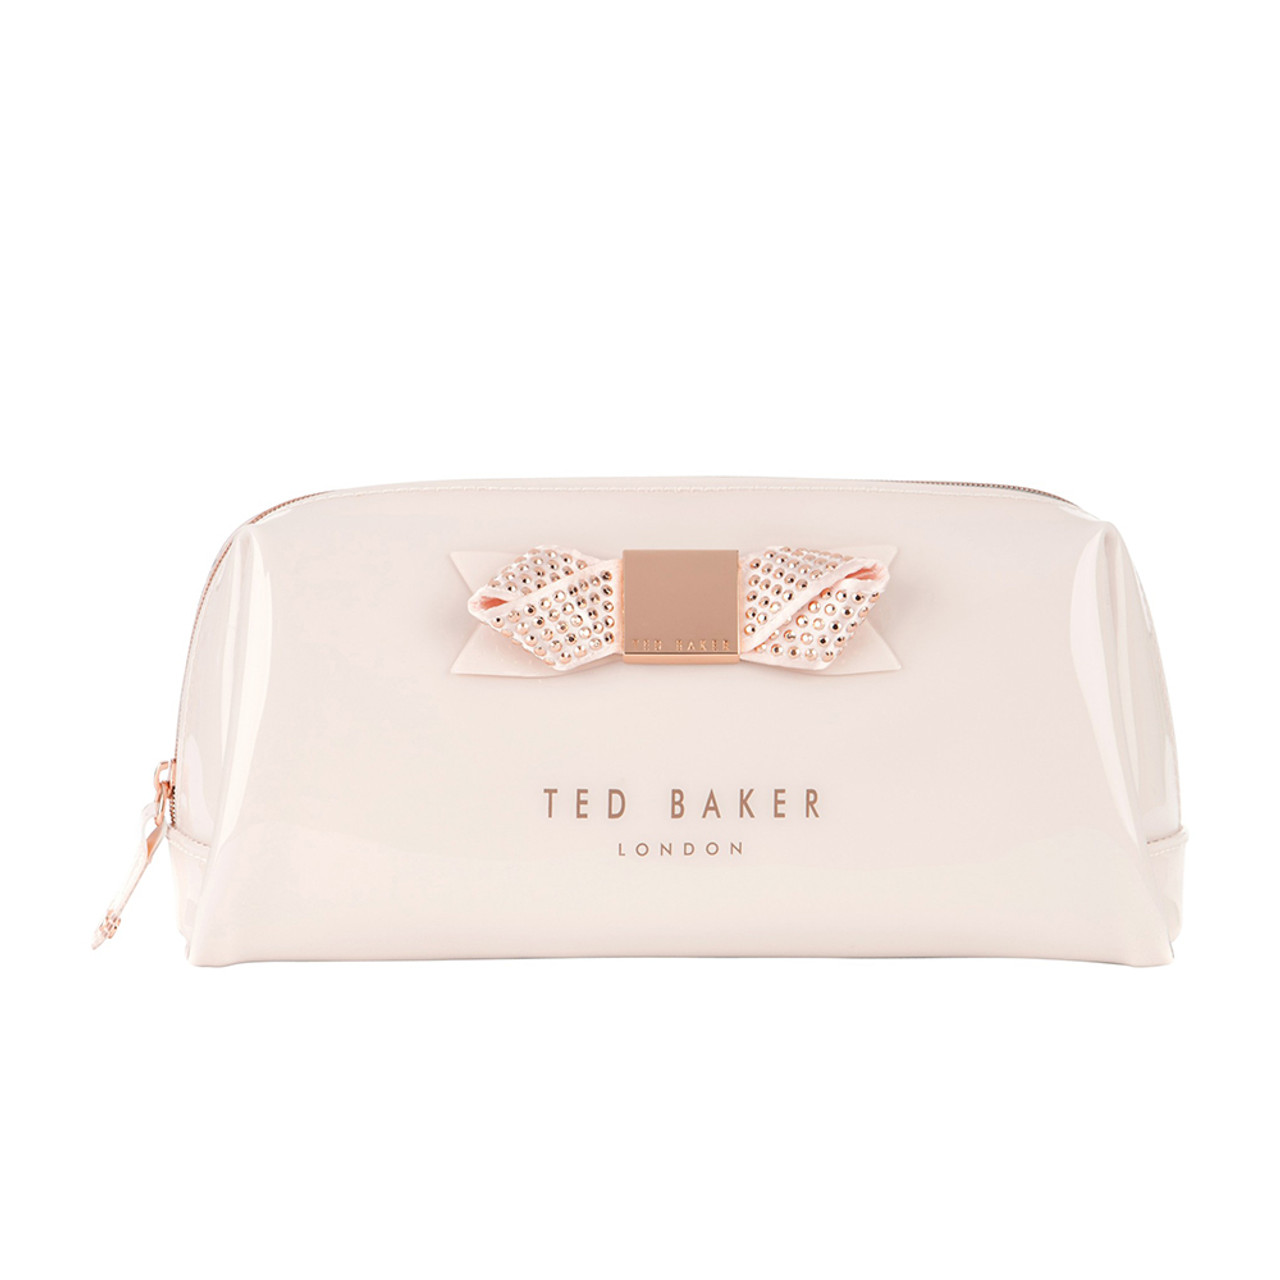 detailed pictures ccd42 17956 Ted Baker Makeup Bag- Metallic Nude Pink